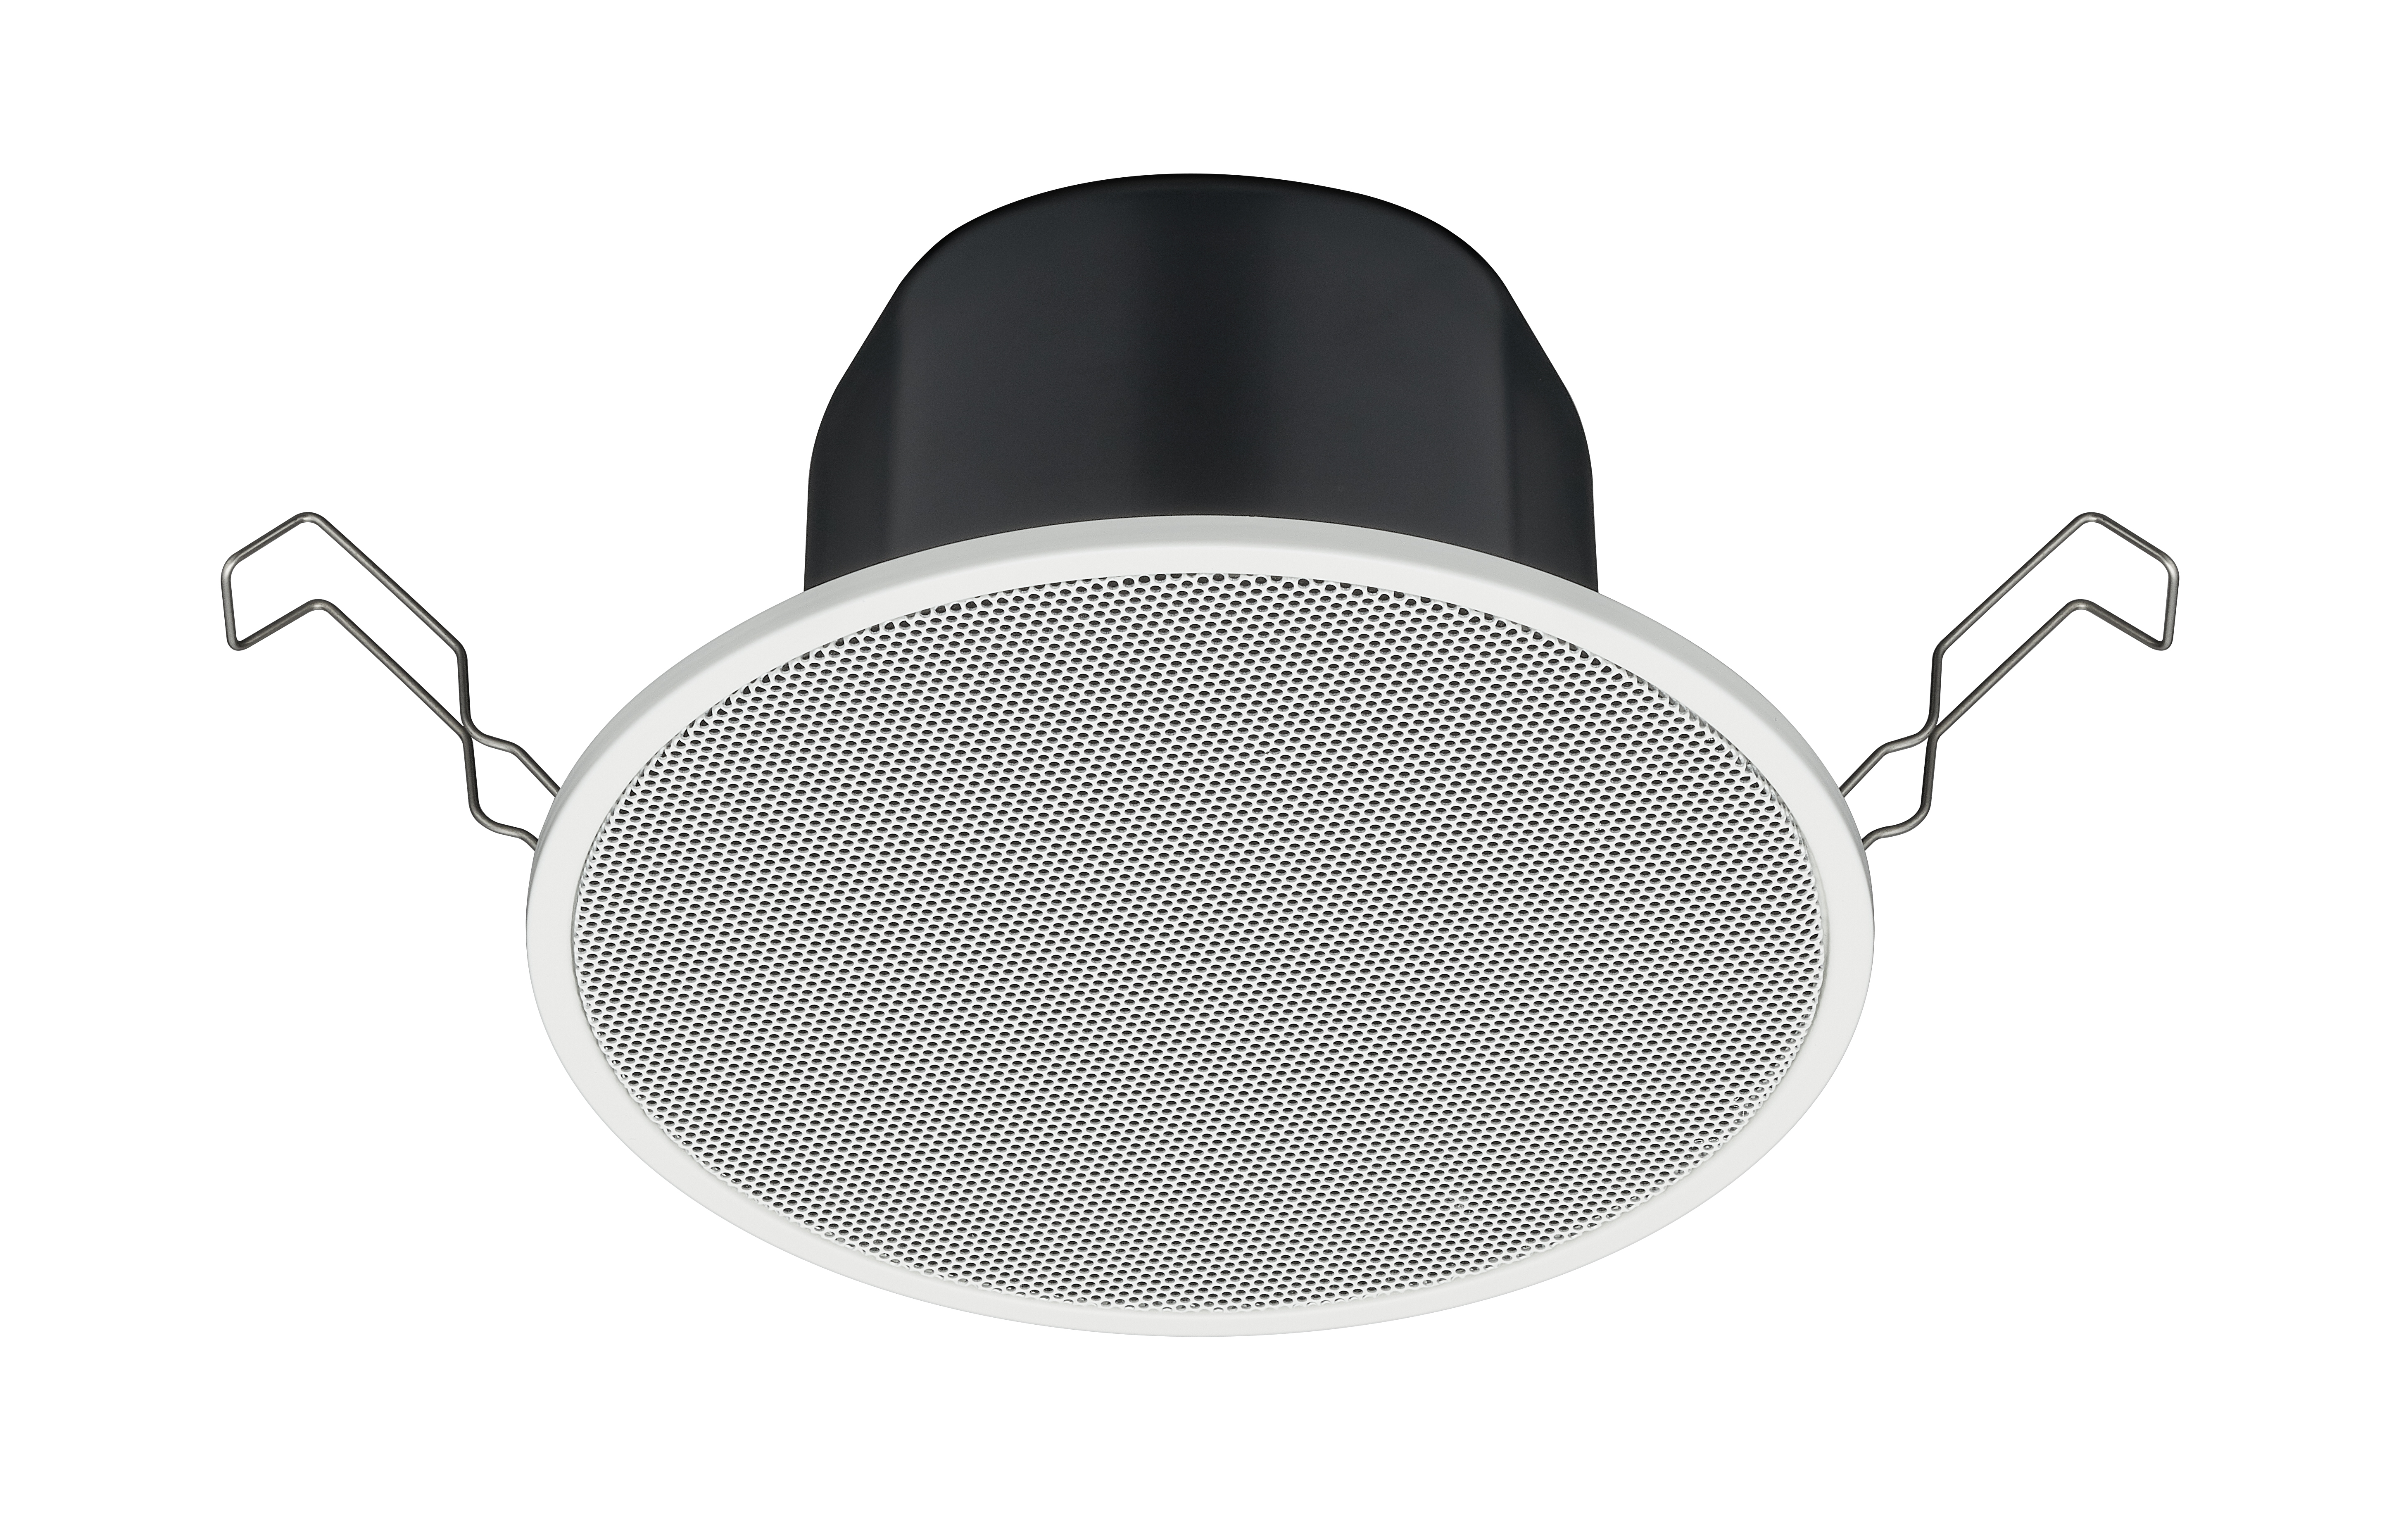 PC-1860BS Ceiling Mount Fire Dome Speaker